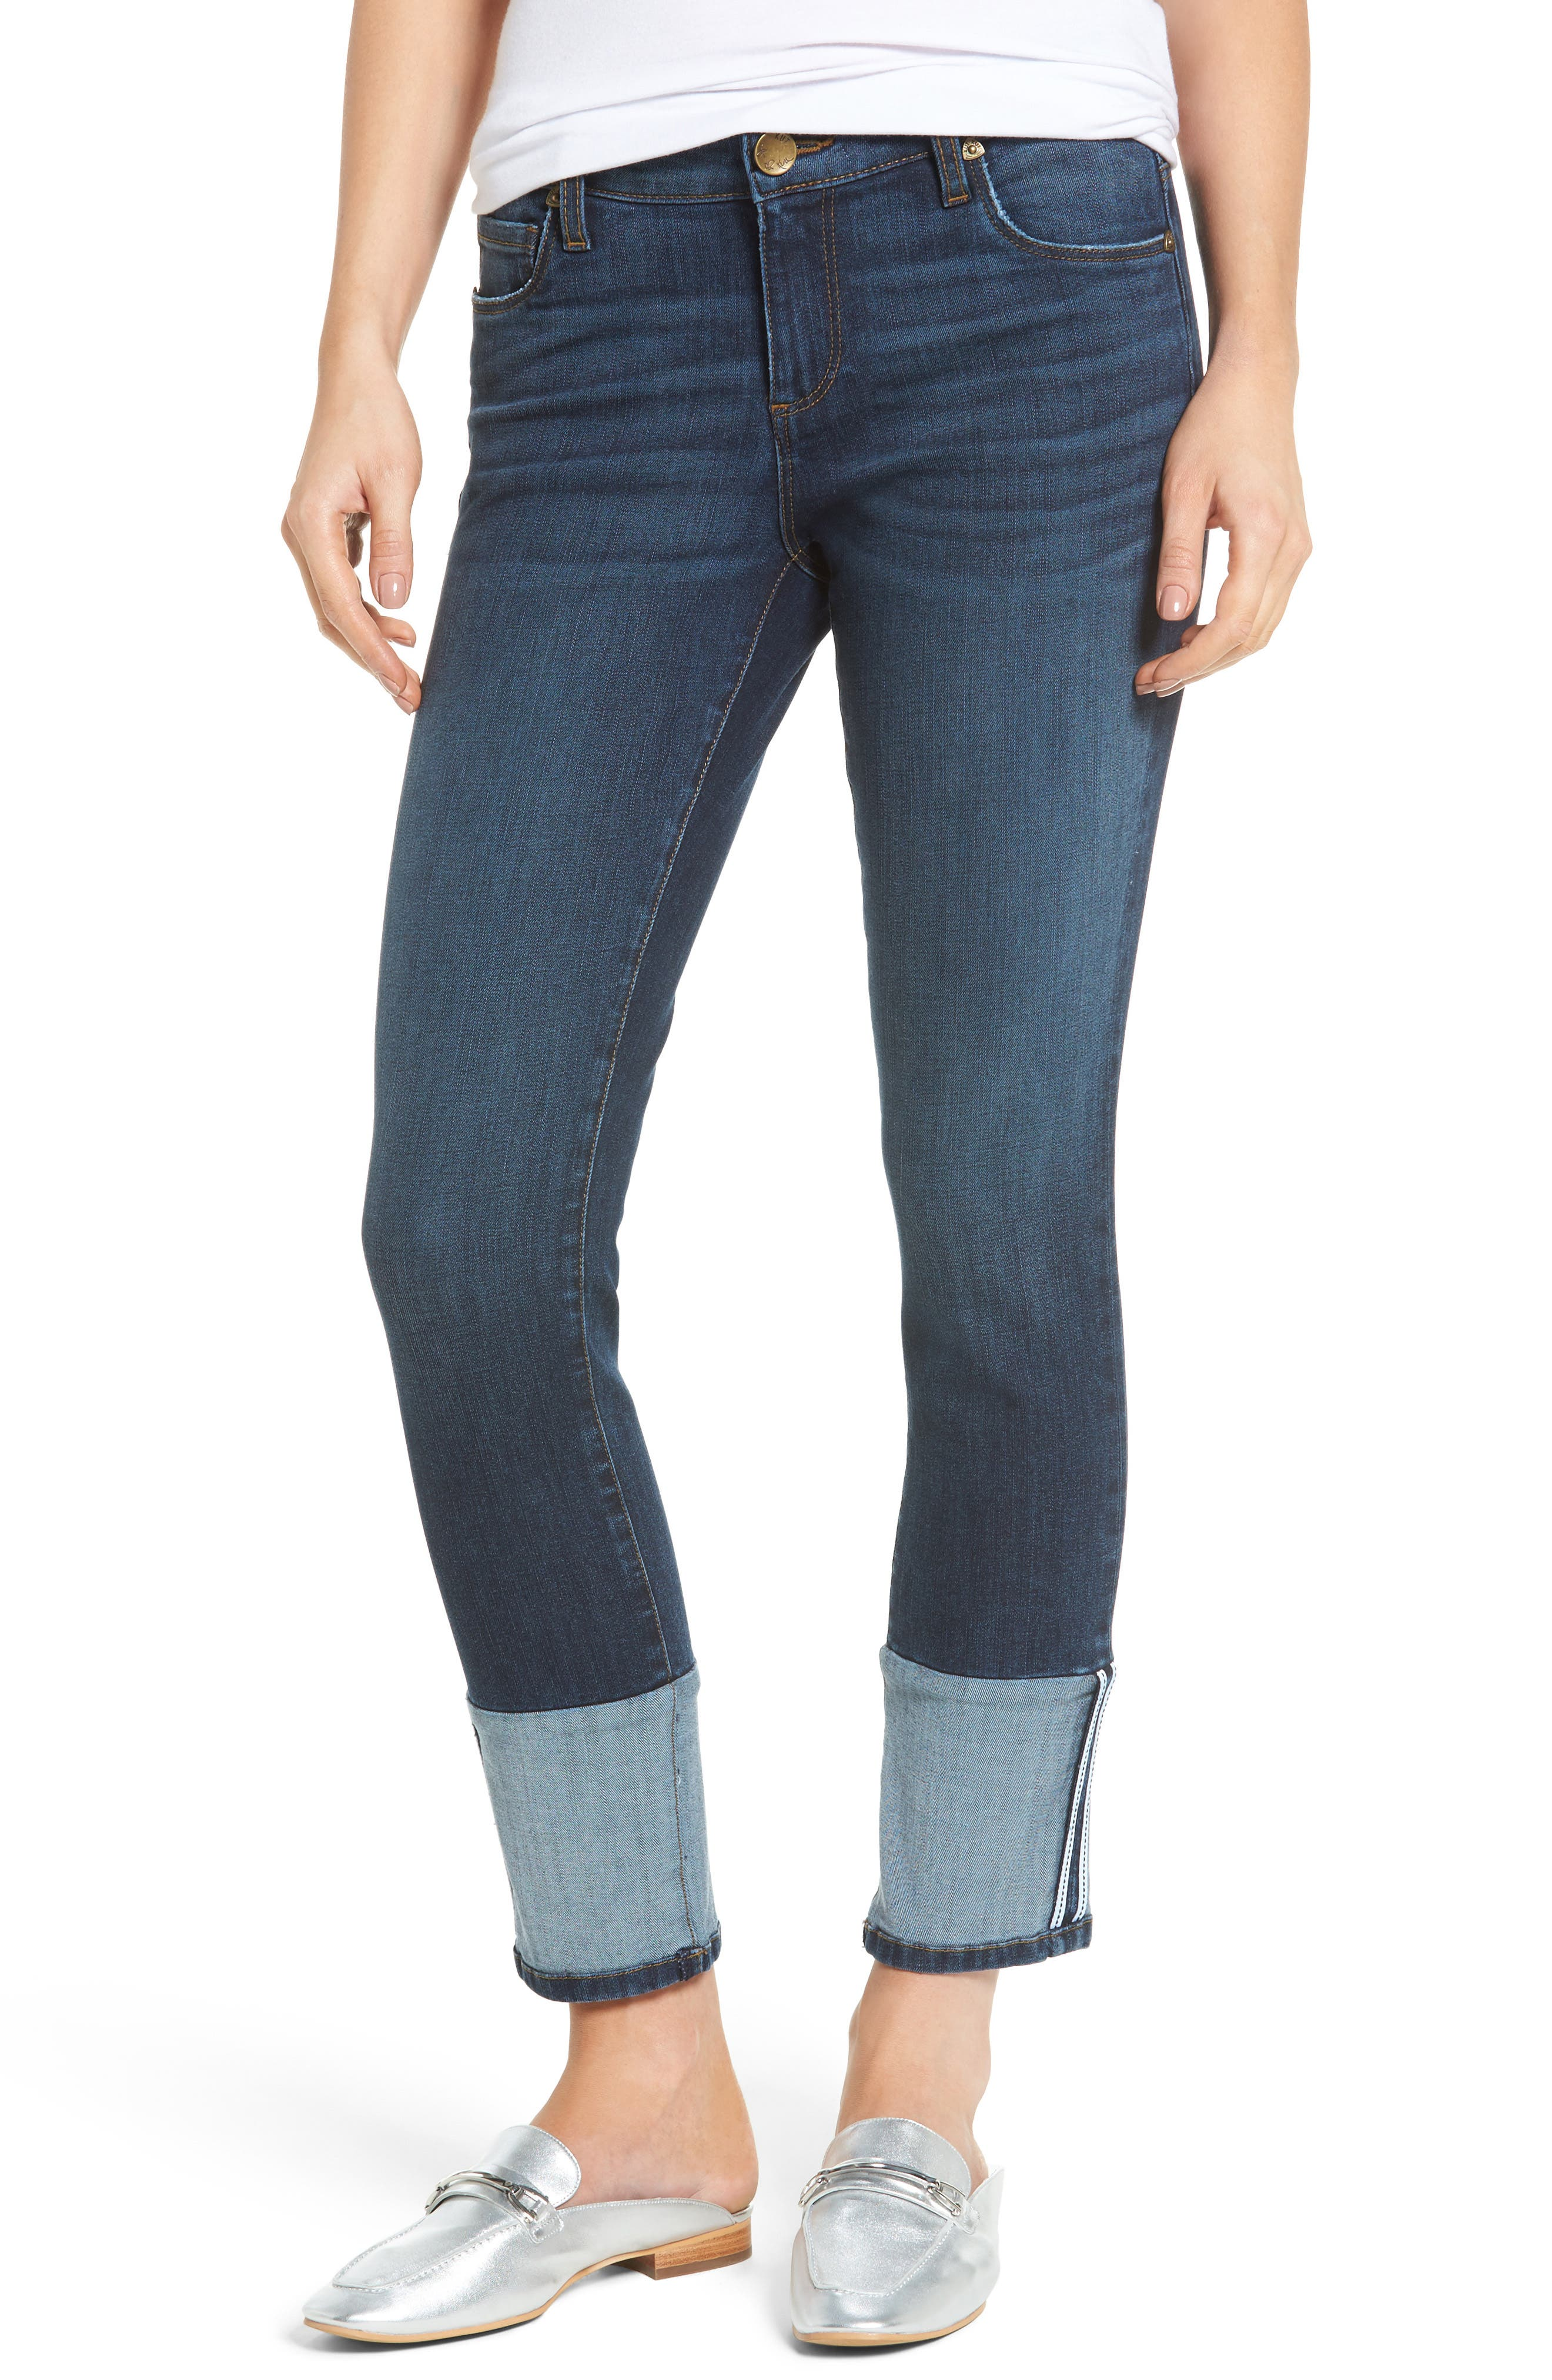 Main Image - KUT from the Kloth Reese Straight Leg Jeans (Stimulating)